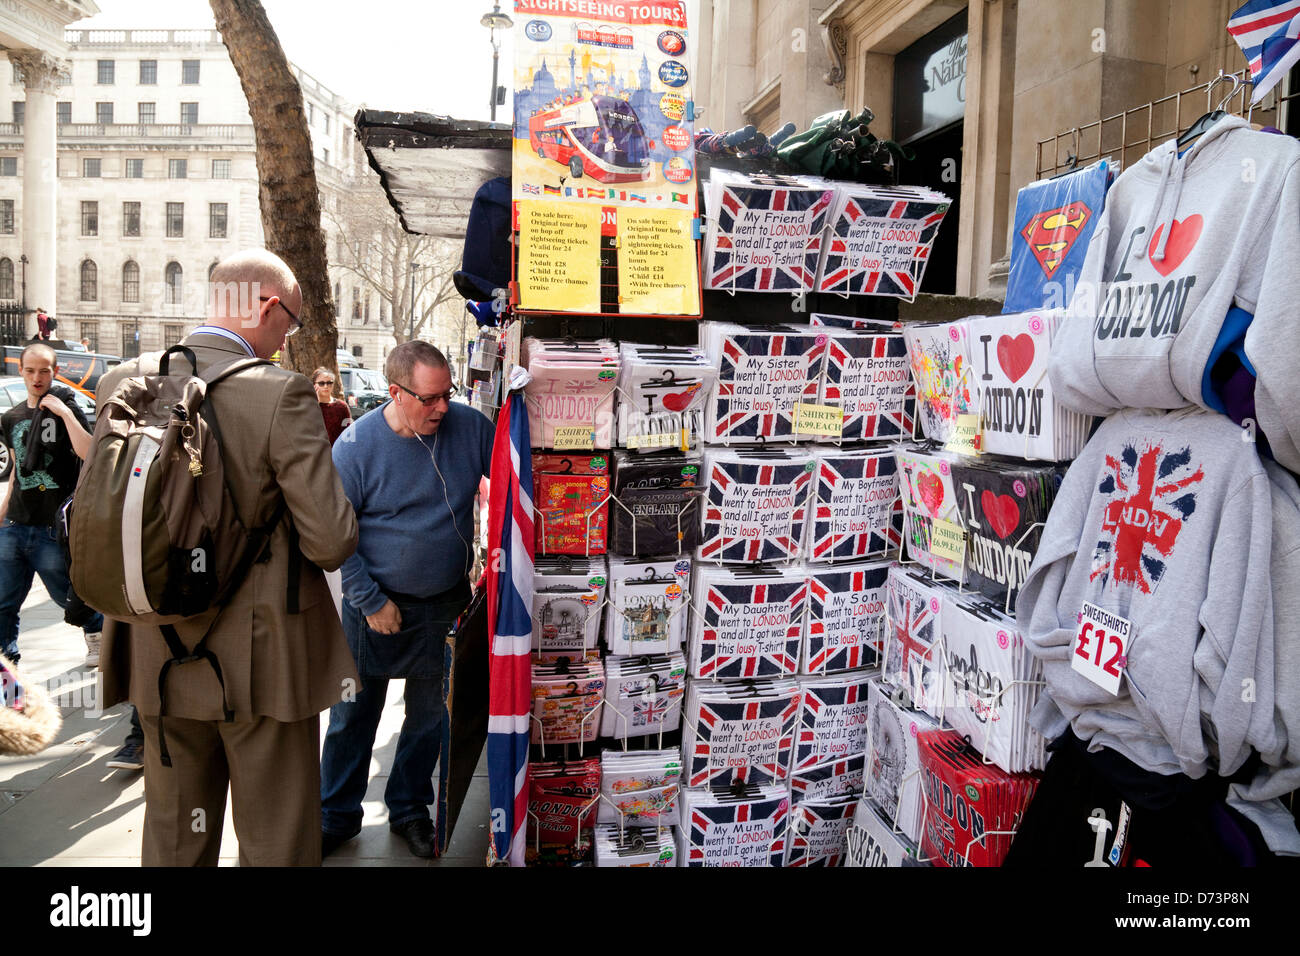 A man shopping for souvenirs and gifts at a Central London street stall, London city centre, UK - Stock Image